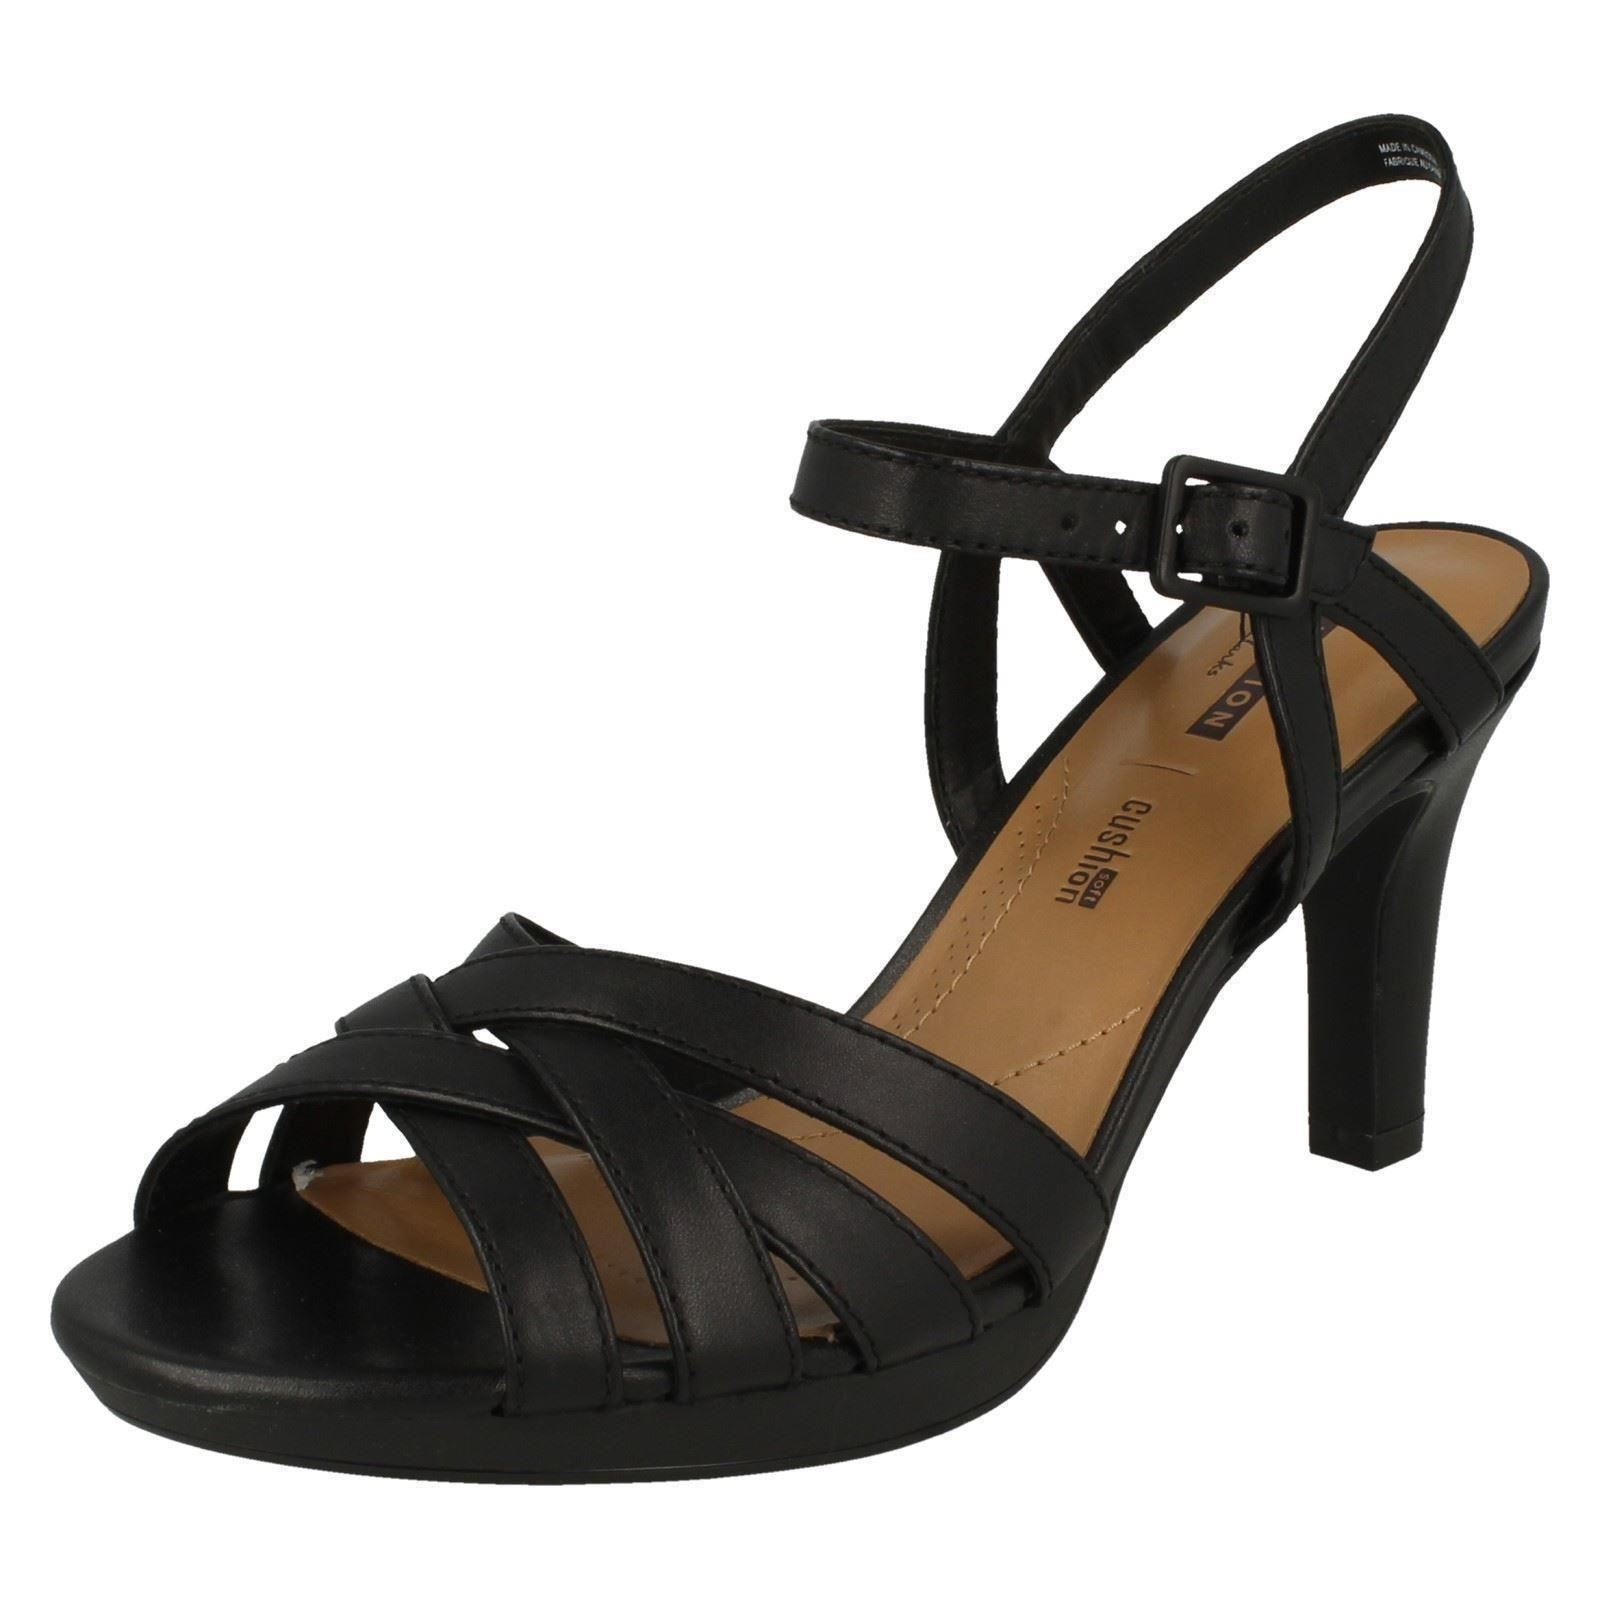 c496aadefb5 Women s Clarks Adriel Wavy Strap Sandals in Black UK 4   EU 37. About this  product. Picture 1 of 7  Picture 2 of 7 ...